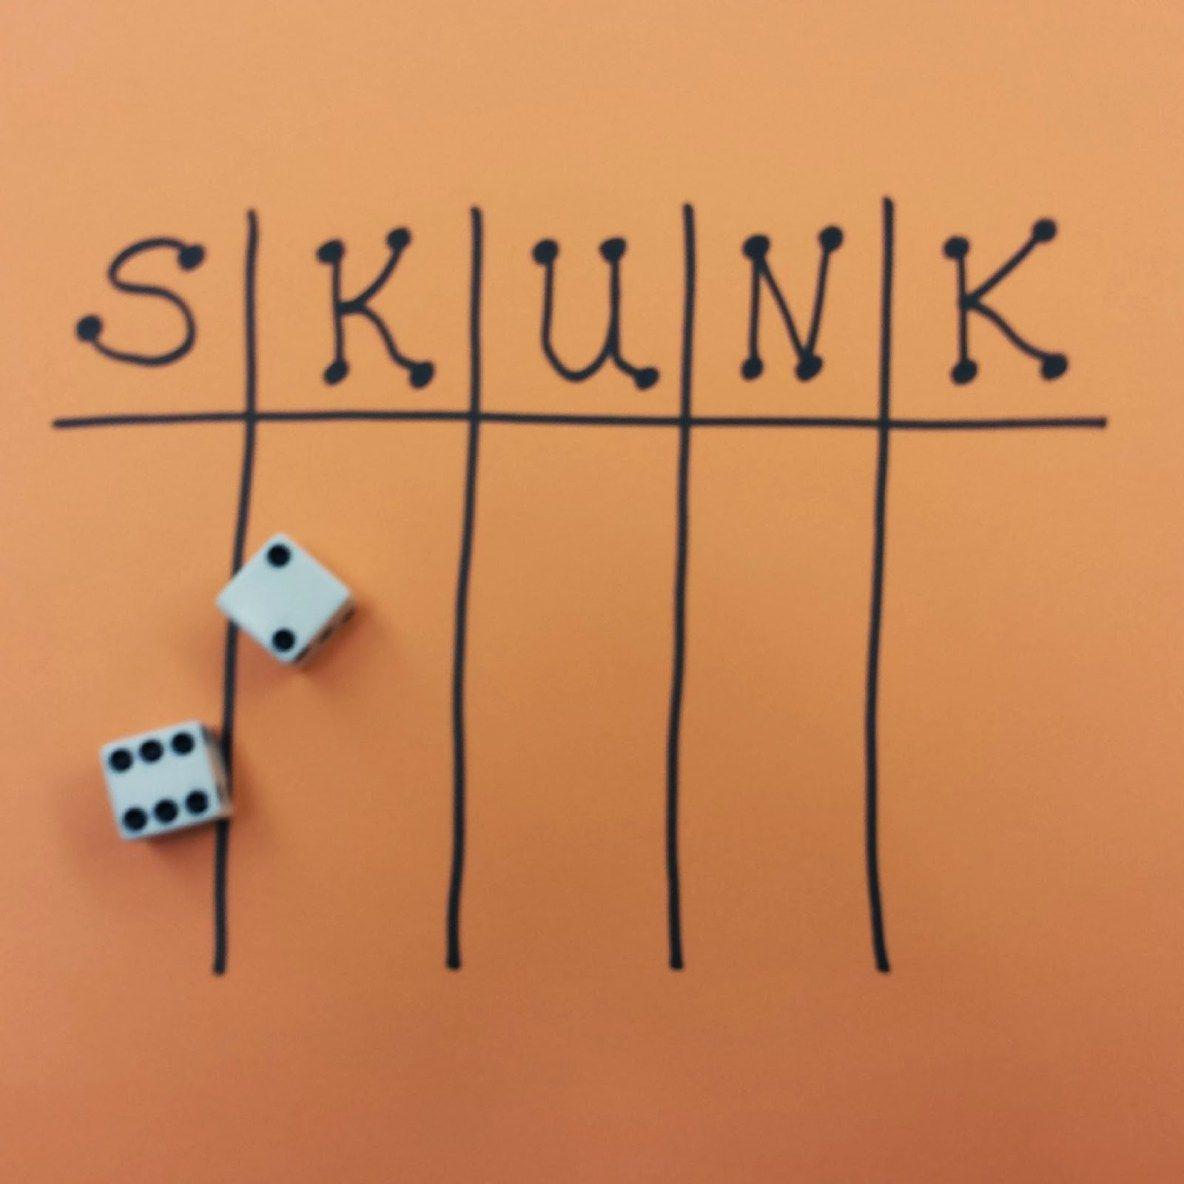 Skunk A Fun Game Of Chance And Probability